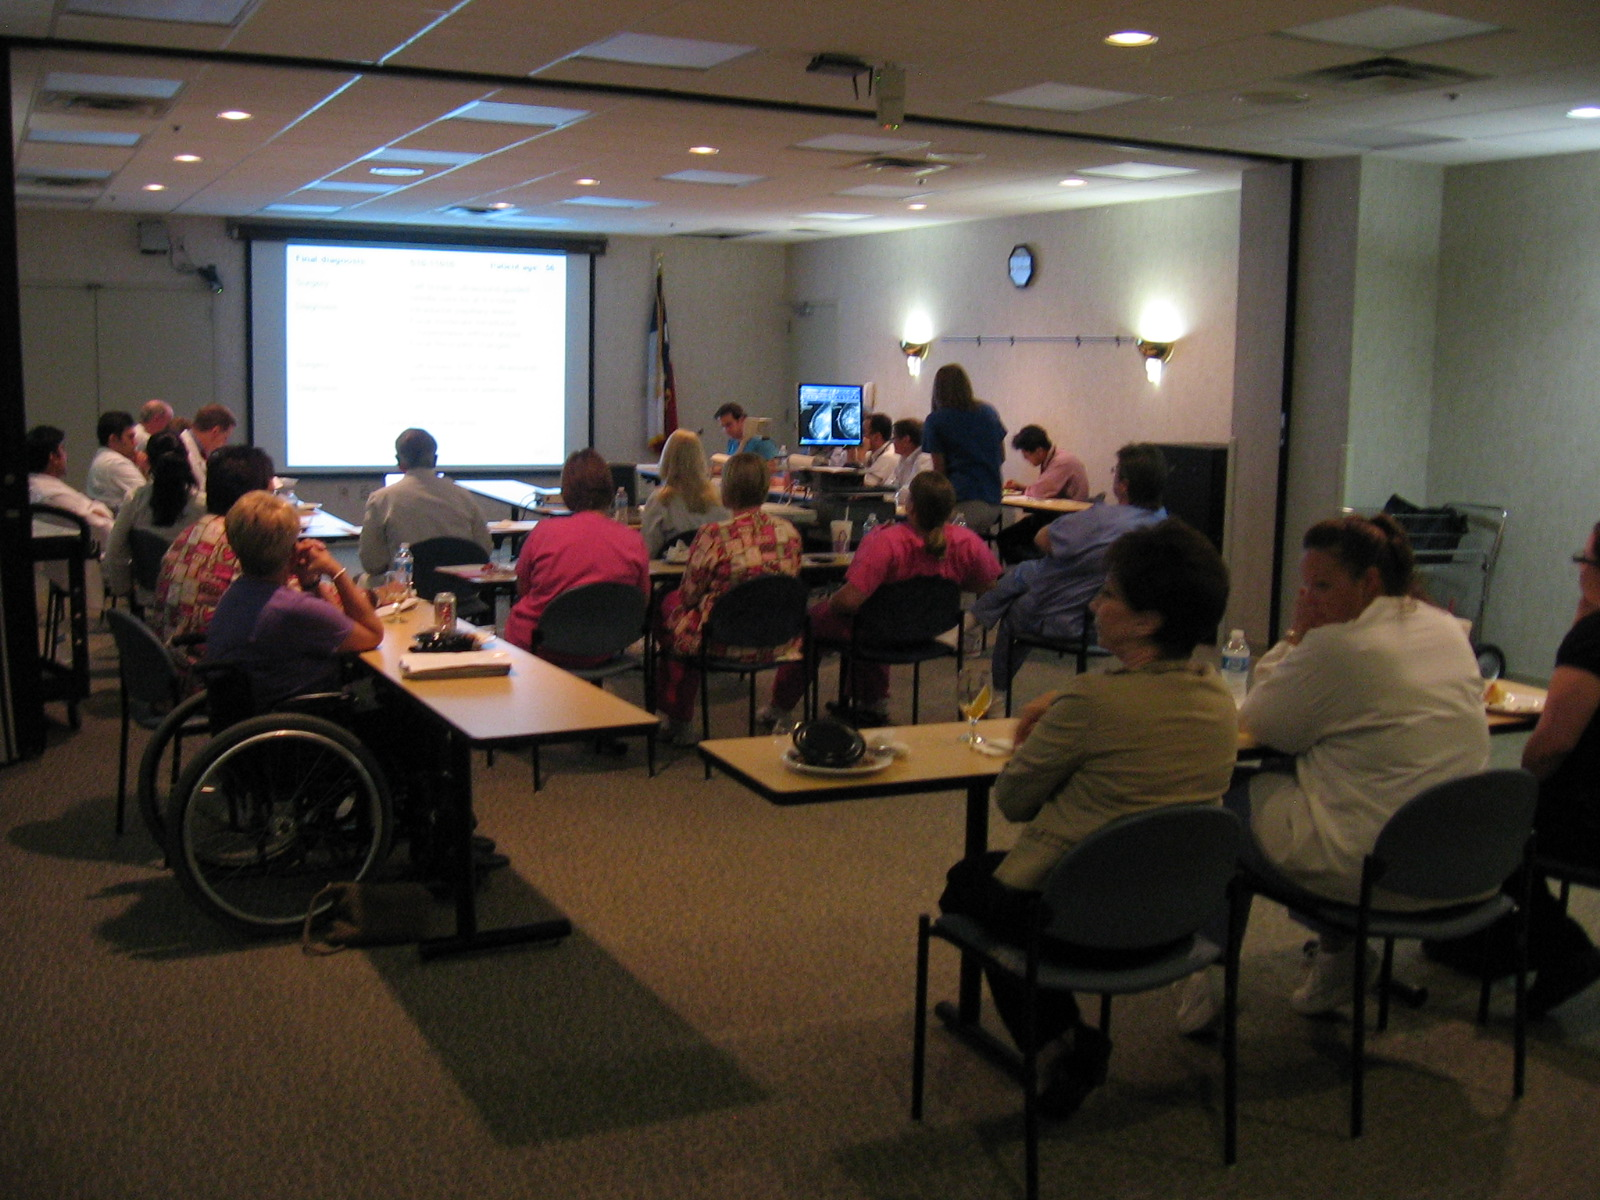 2001 photograph of our comprehensive breast conference held at Houston Northwest Medical Center hospital. In attendance are surgeons, medical and radiation oncologists, pathologists and mammographers. Also, present are key members of the breast support group. The equipment and presentation techniques have improved over the years. We are in our 22nd year as of 2018.